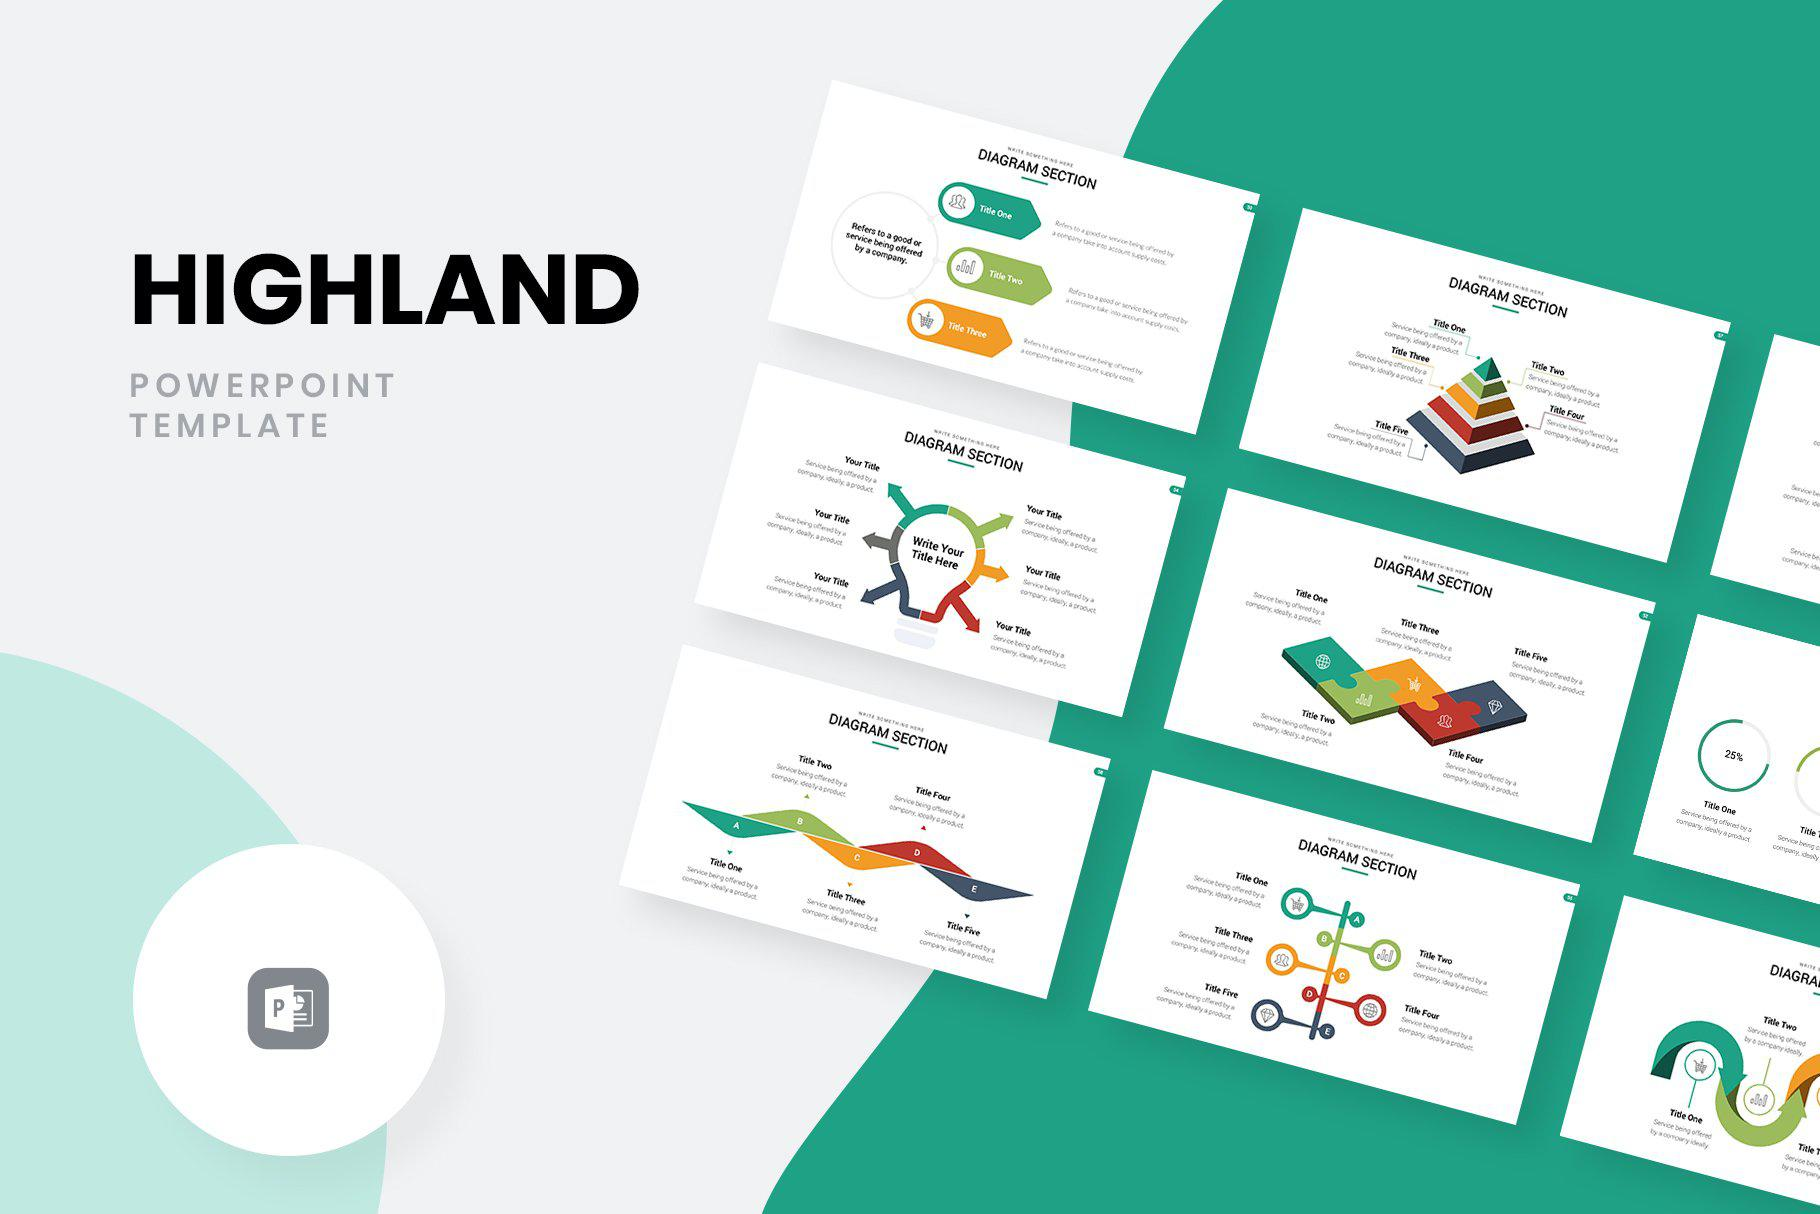 Highland Marketing Pitch Deck PowerPoint Template